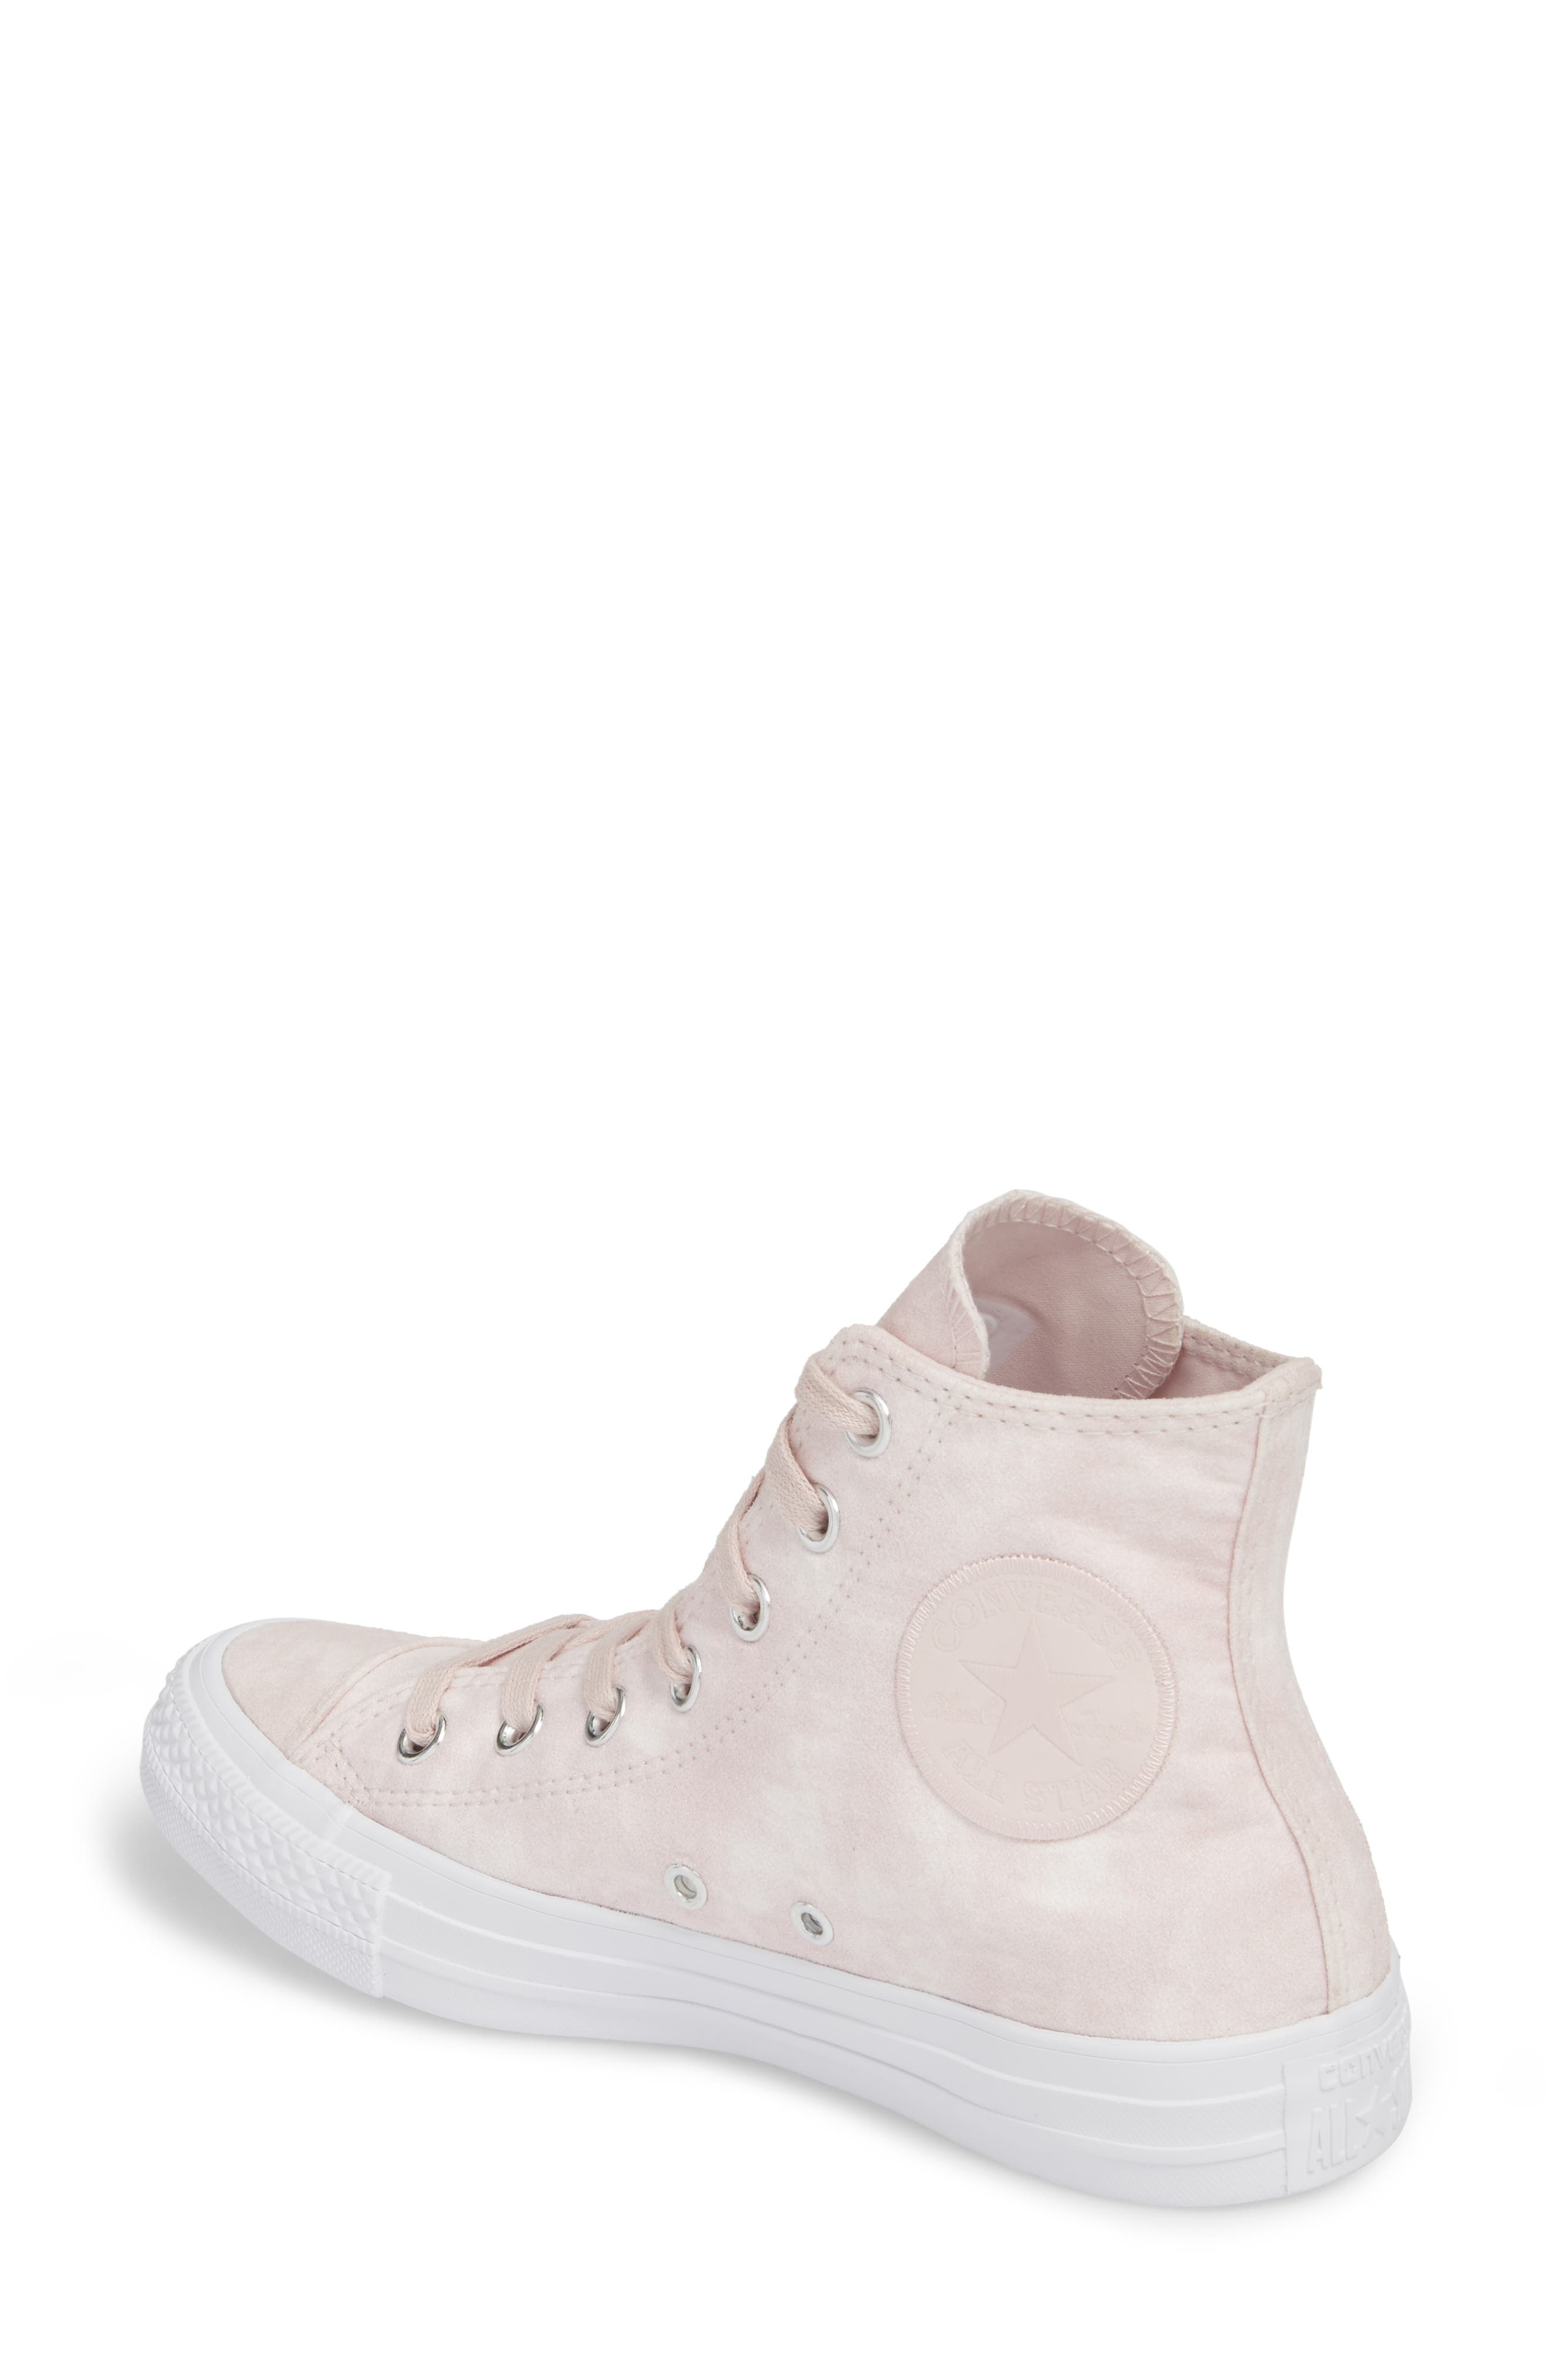 Chuck Taylor<sup>®</sup> All Star<sup>®</sup> Peached High Top Sneaker,                             Alternate thumbnail 2, color,                             653